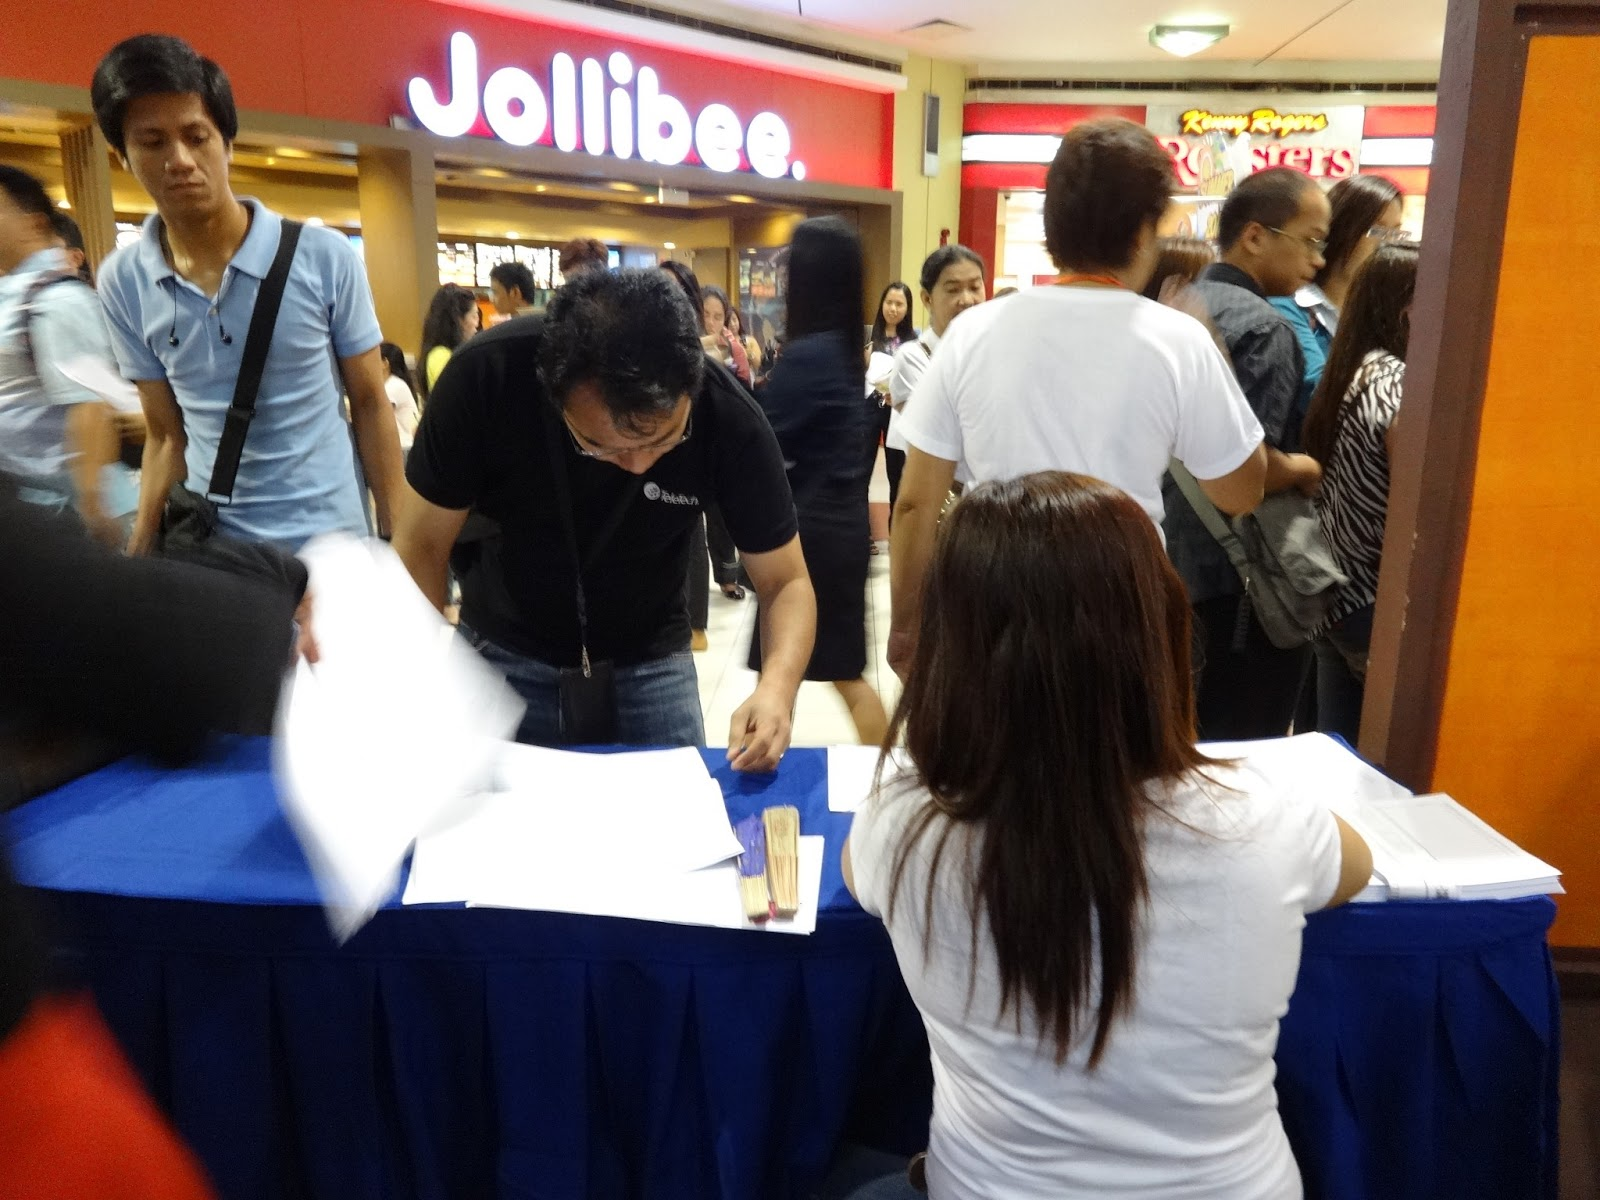 my so called life sm city san lazaro s job fair two thumbs up in this line what are some of the advantages of going to job fair